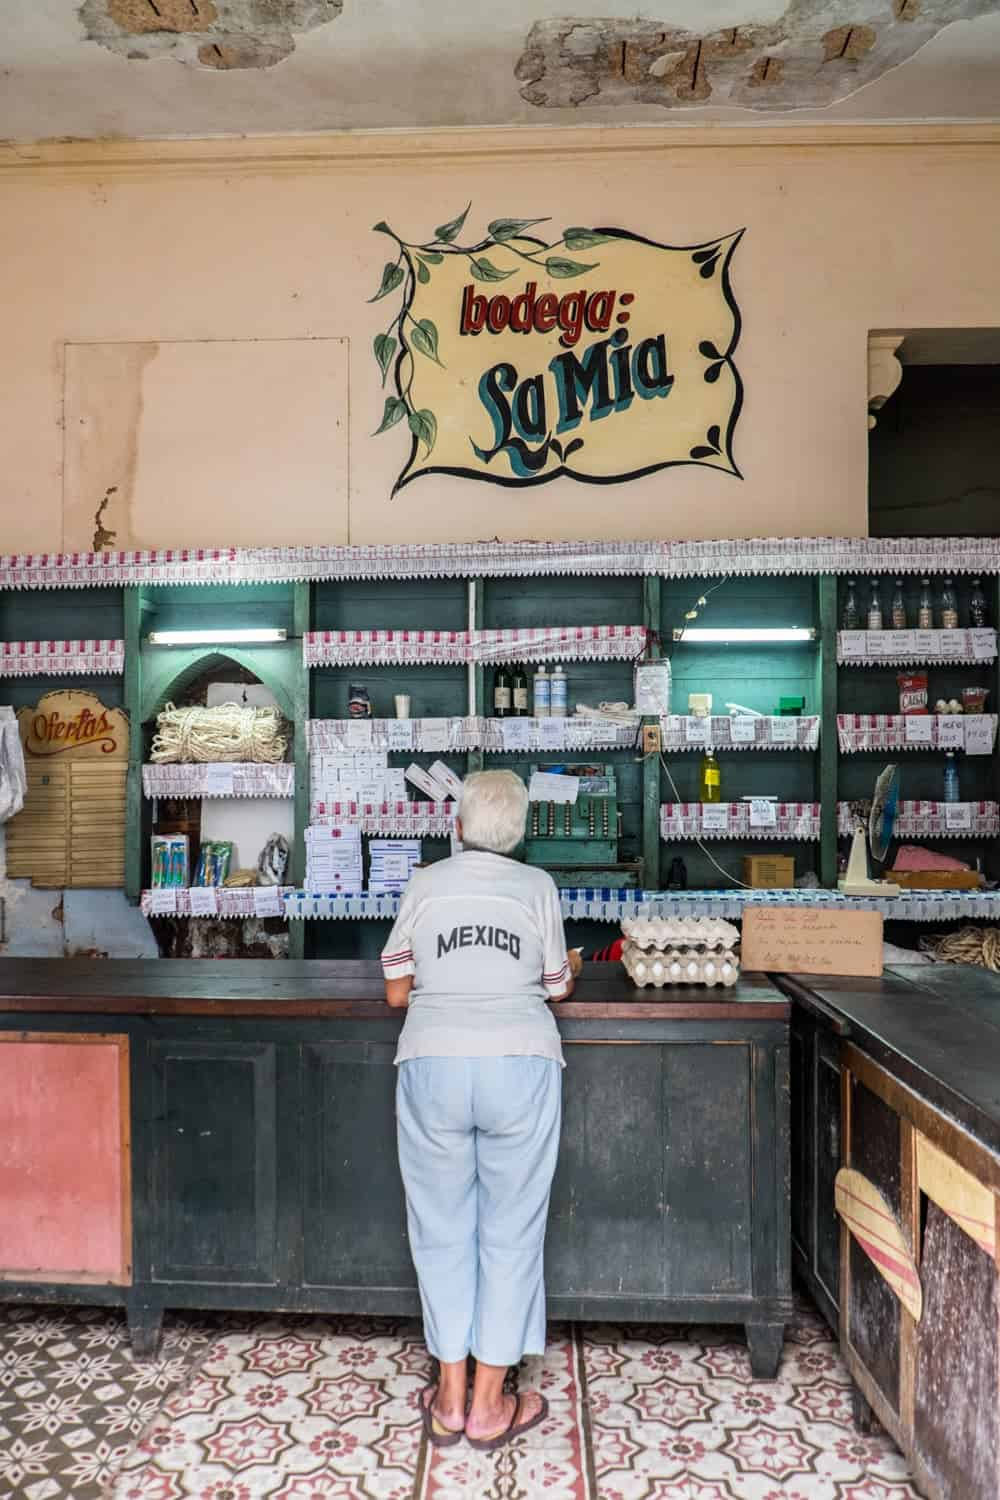 Rations in Cuba, Travel to Cuba guide